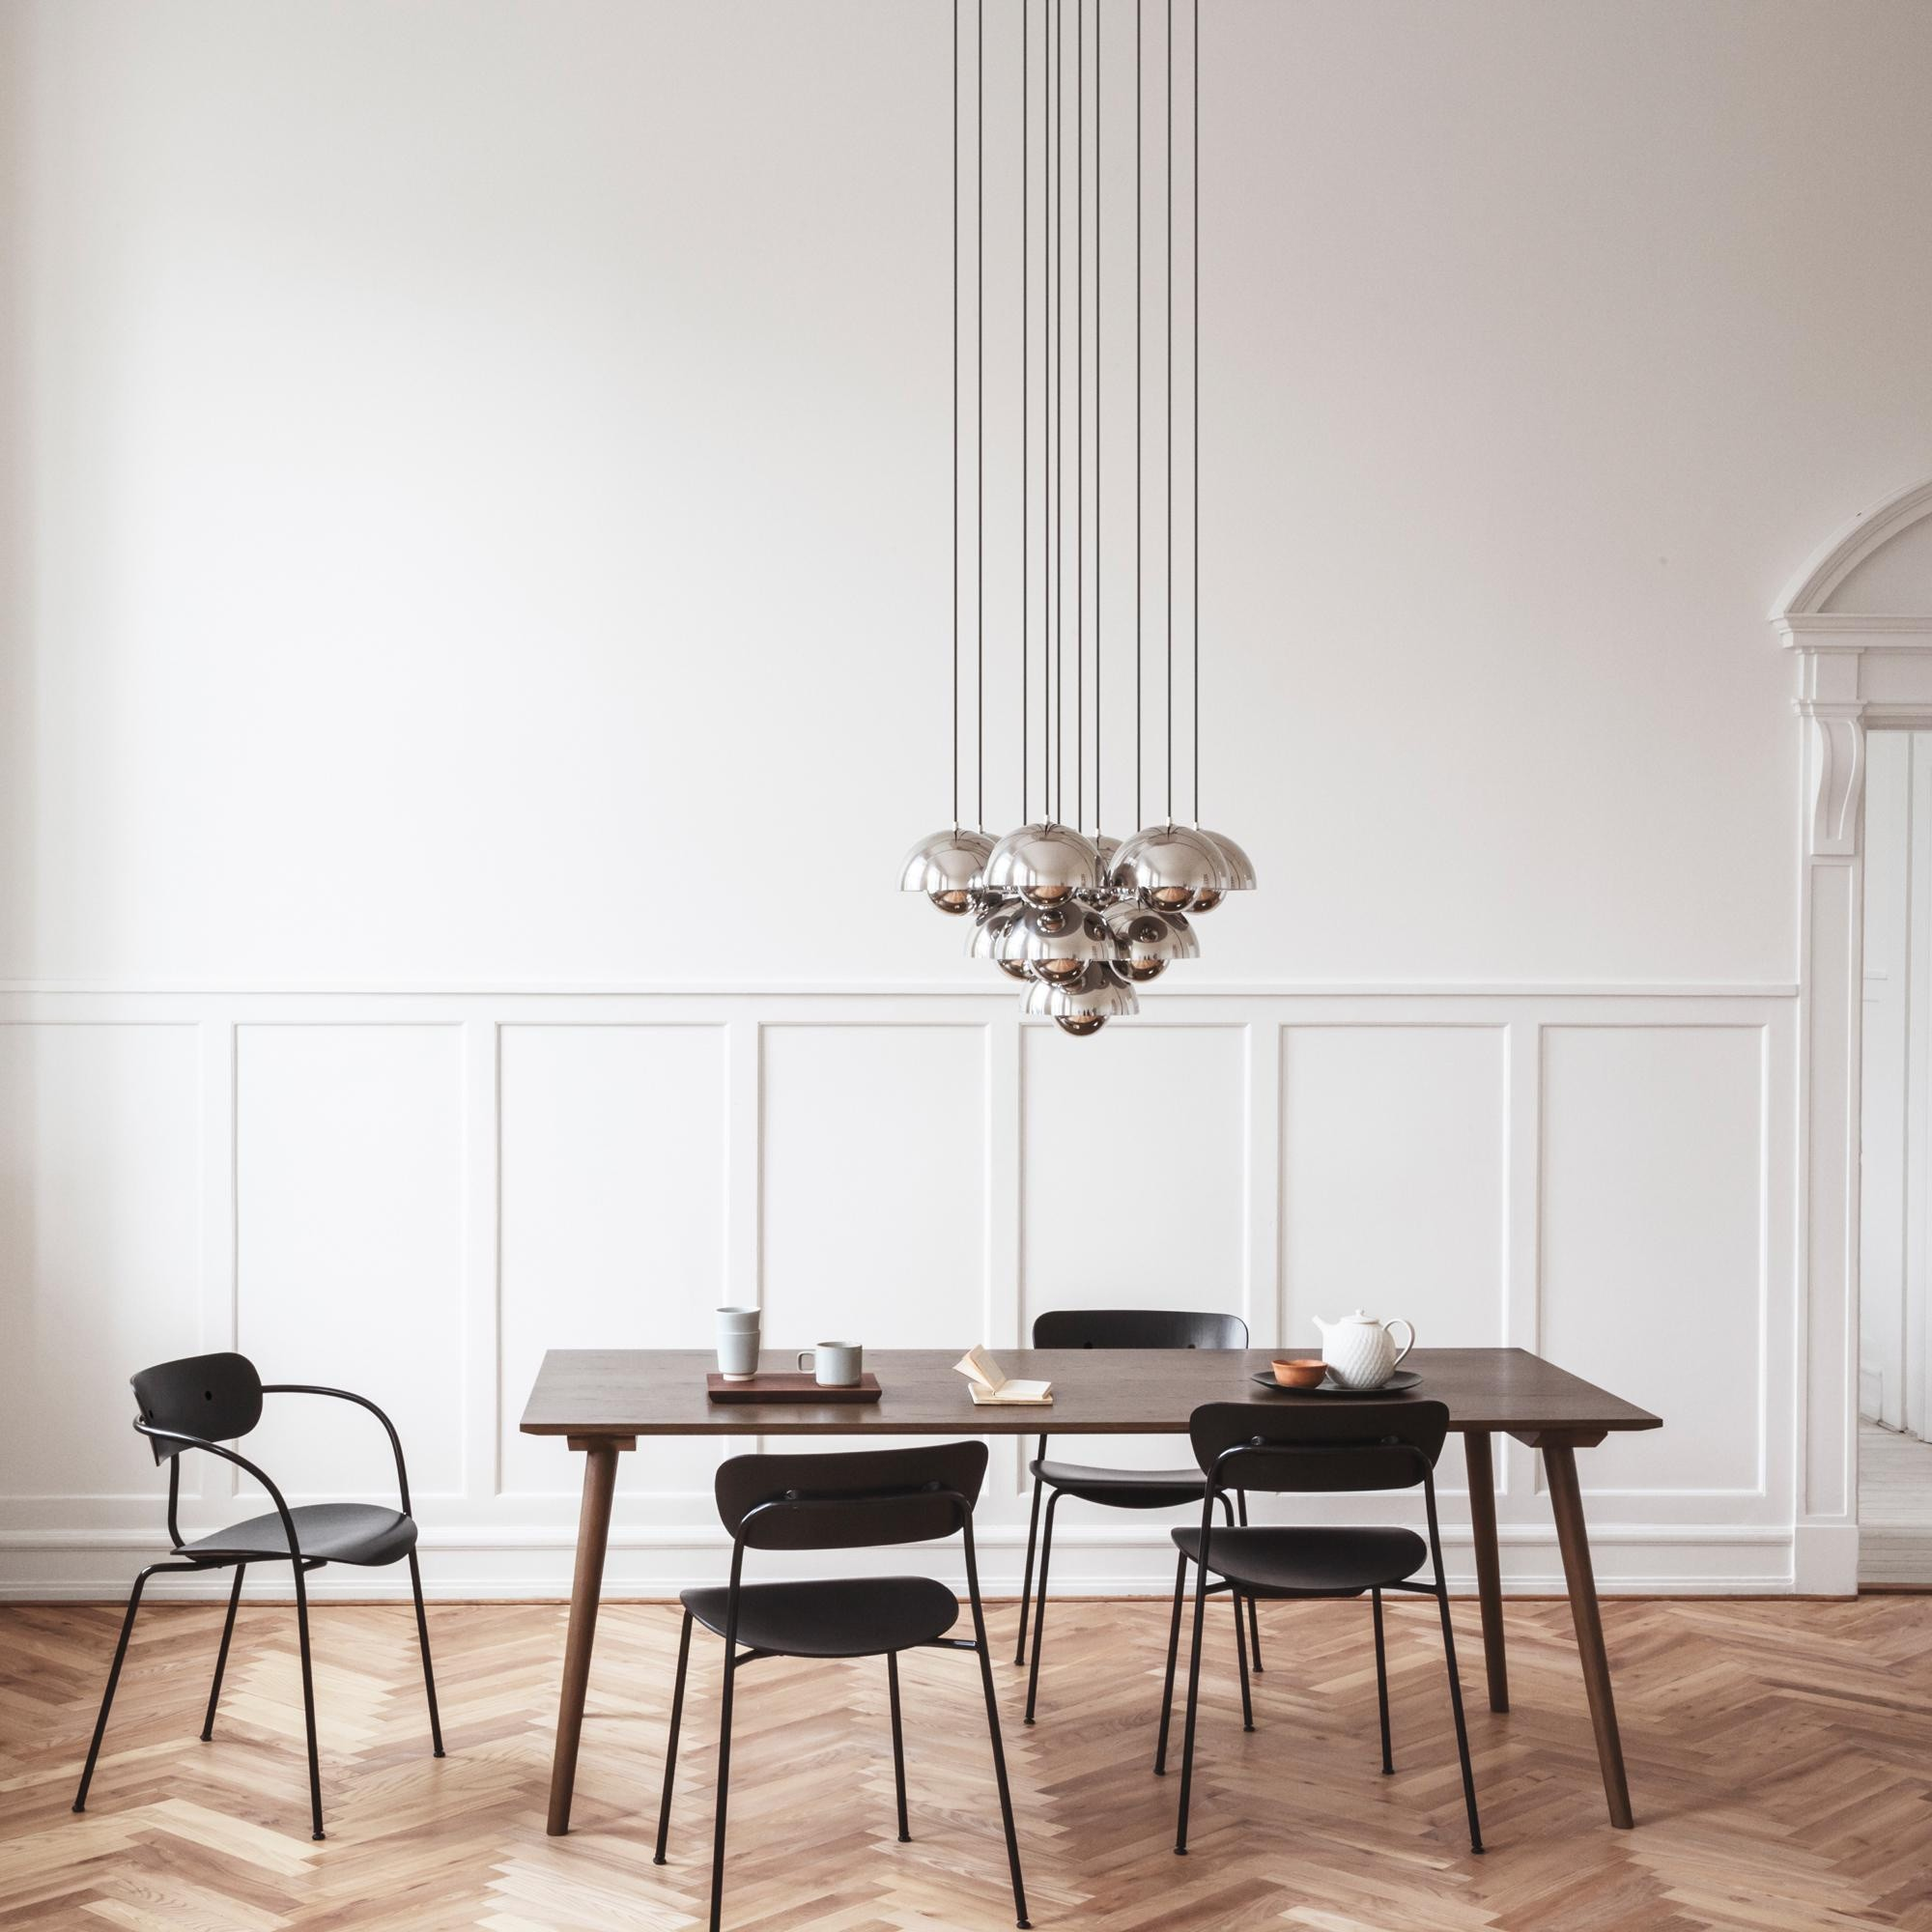 tradition In Between SK5 Dining Table  AmbienteDirect